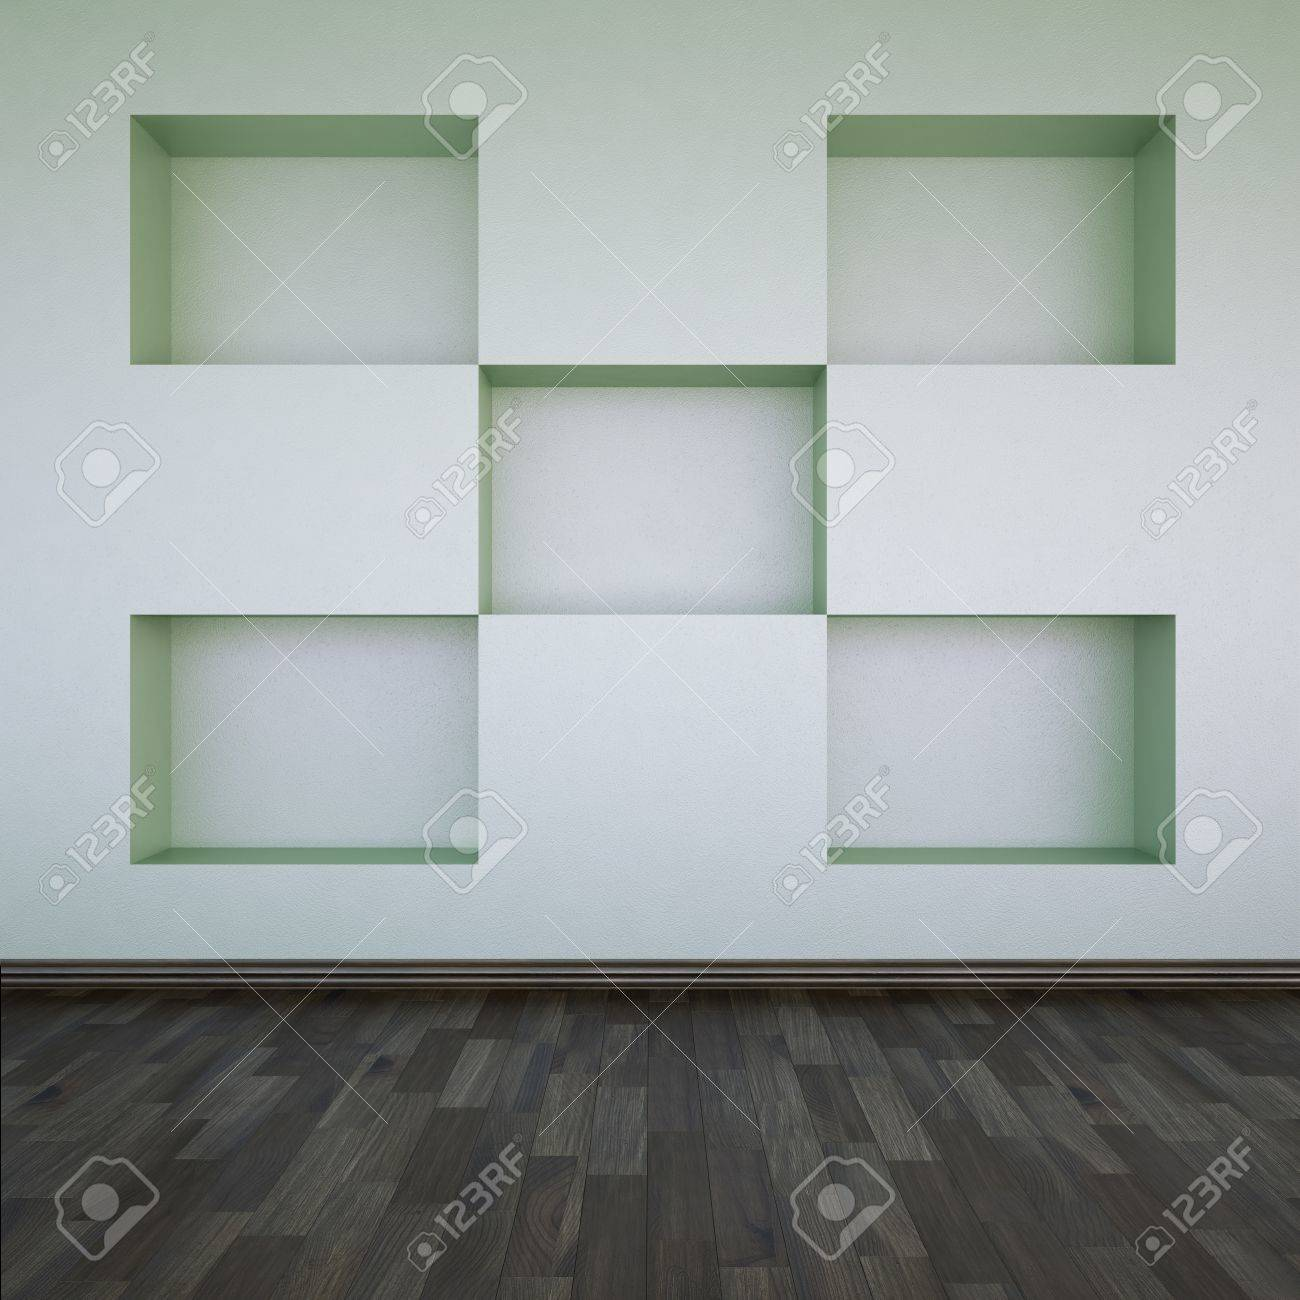 A wall with empty shelves Stock Photo - 9818955